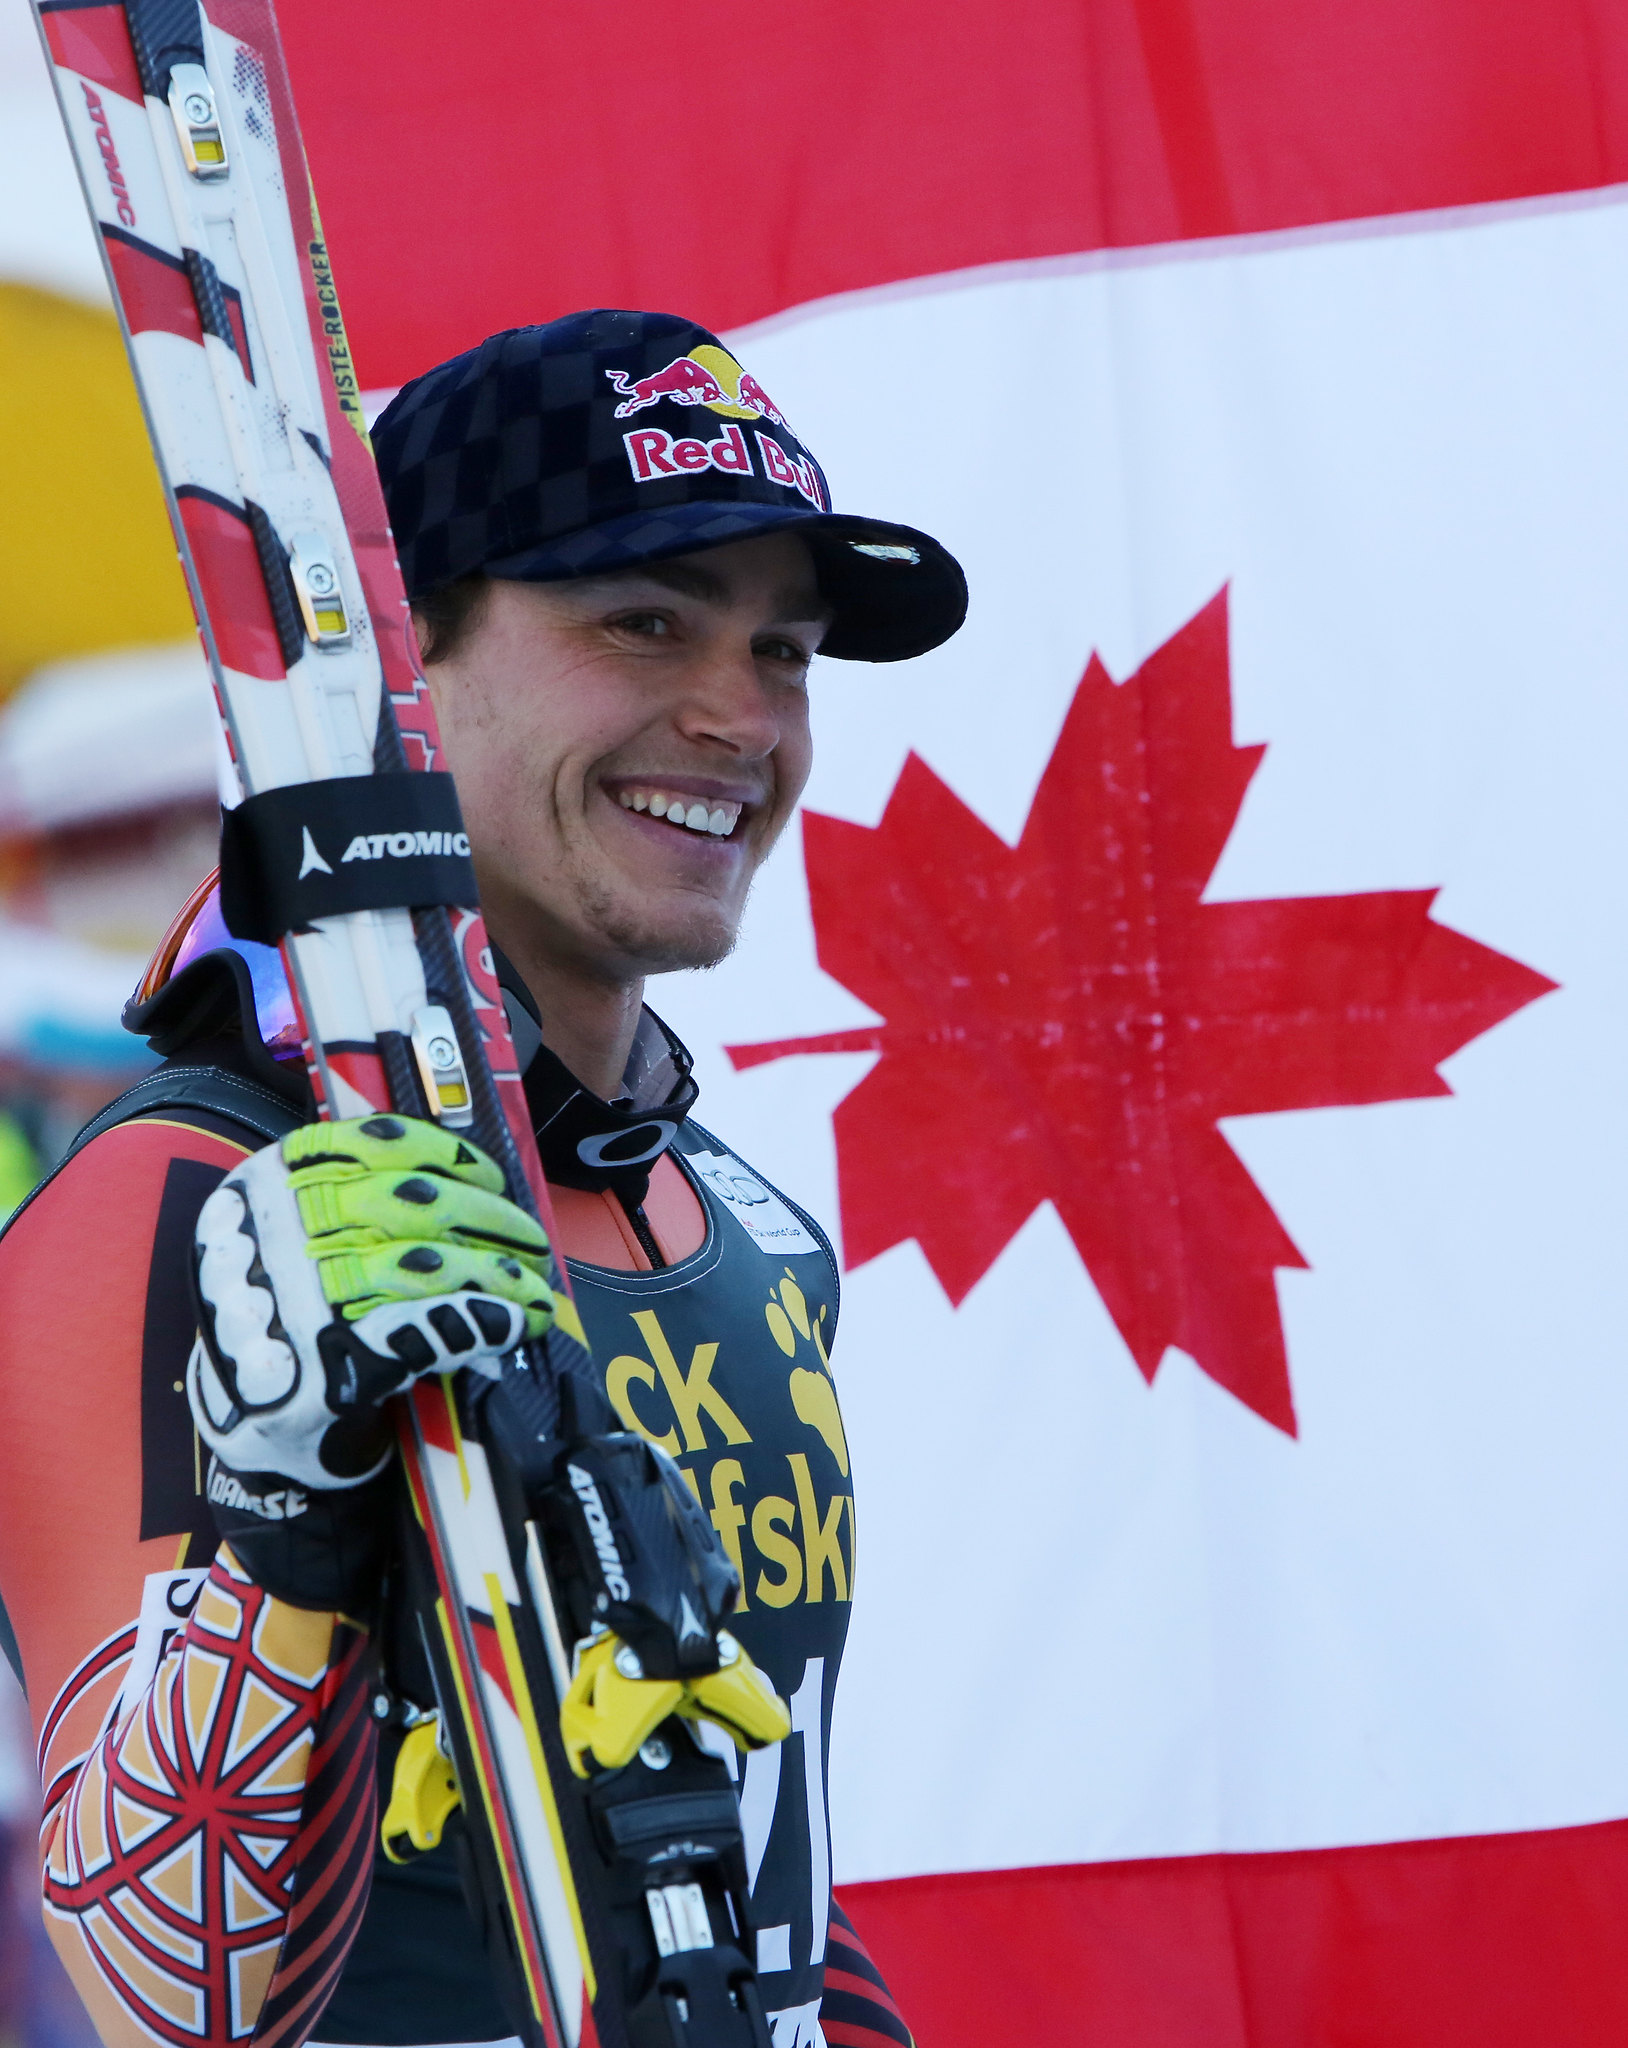 Guay ties the Canadian record for World Cup podiums with a win in the downhill in ValGardena, ITA